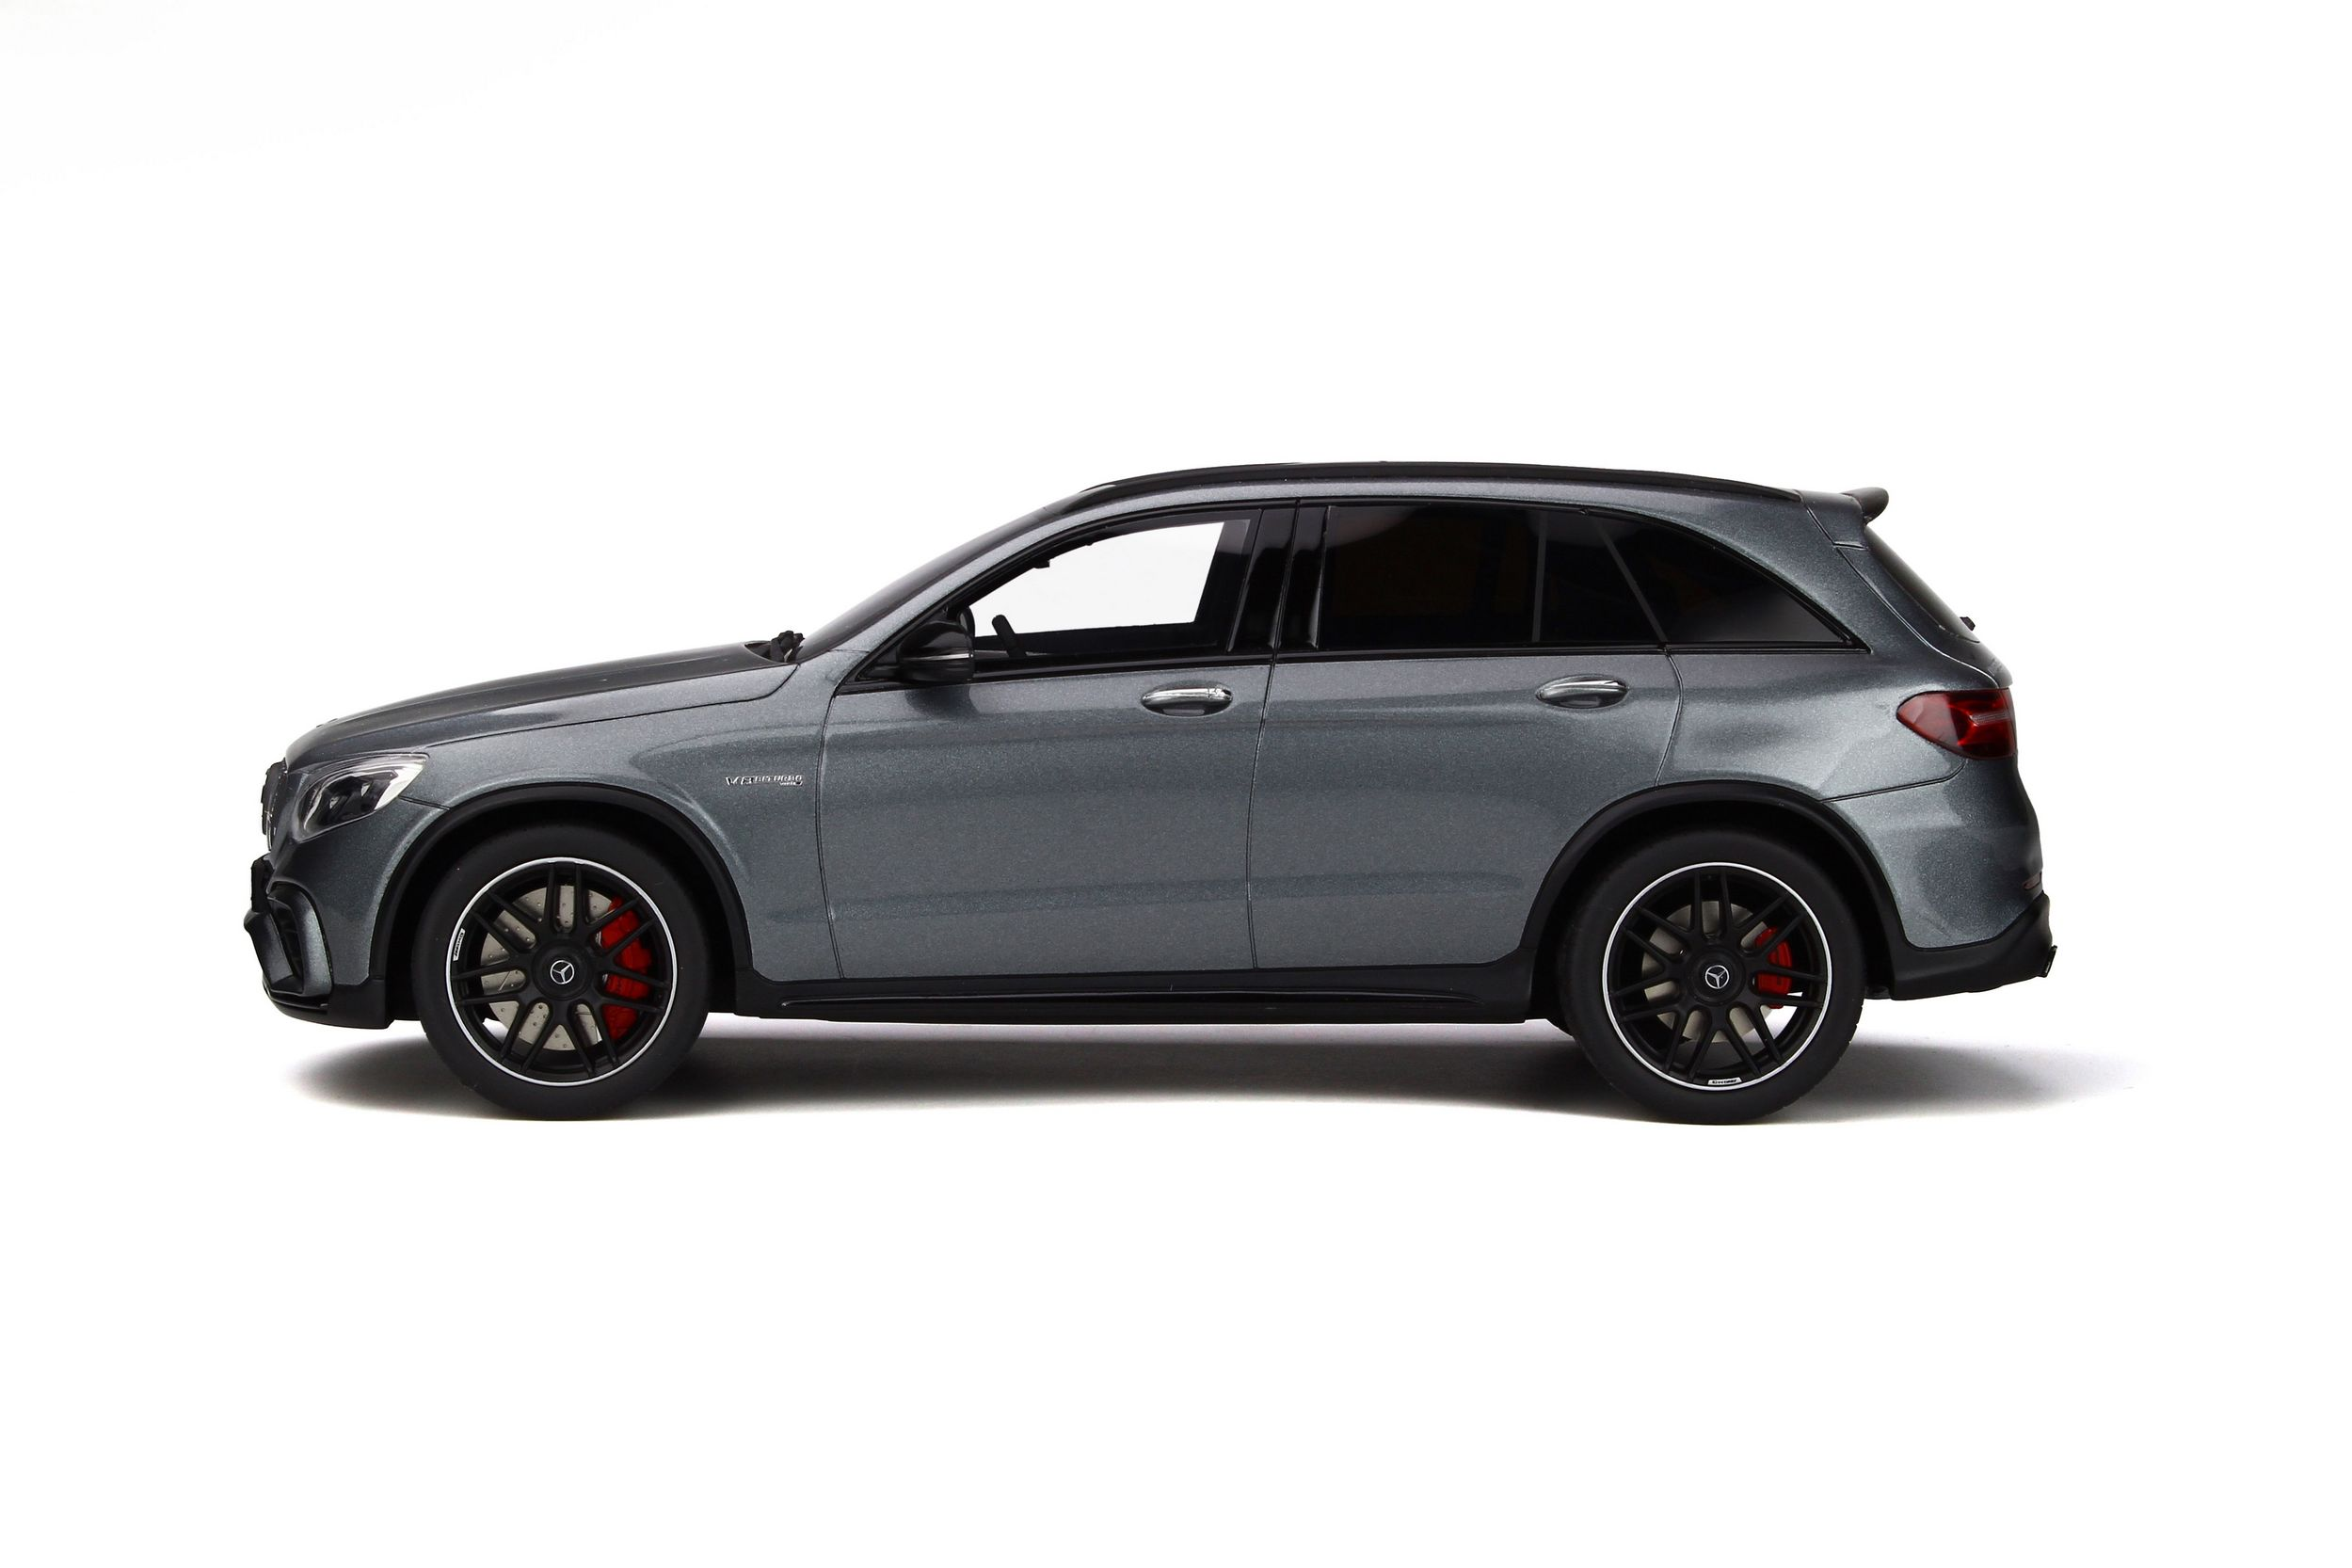 mercedes amg glc 63 s voiture miniature de collection. Black Bedroom Furniture Sets. Home Design Ideas